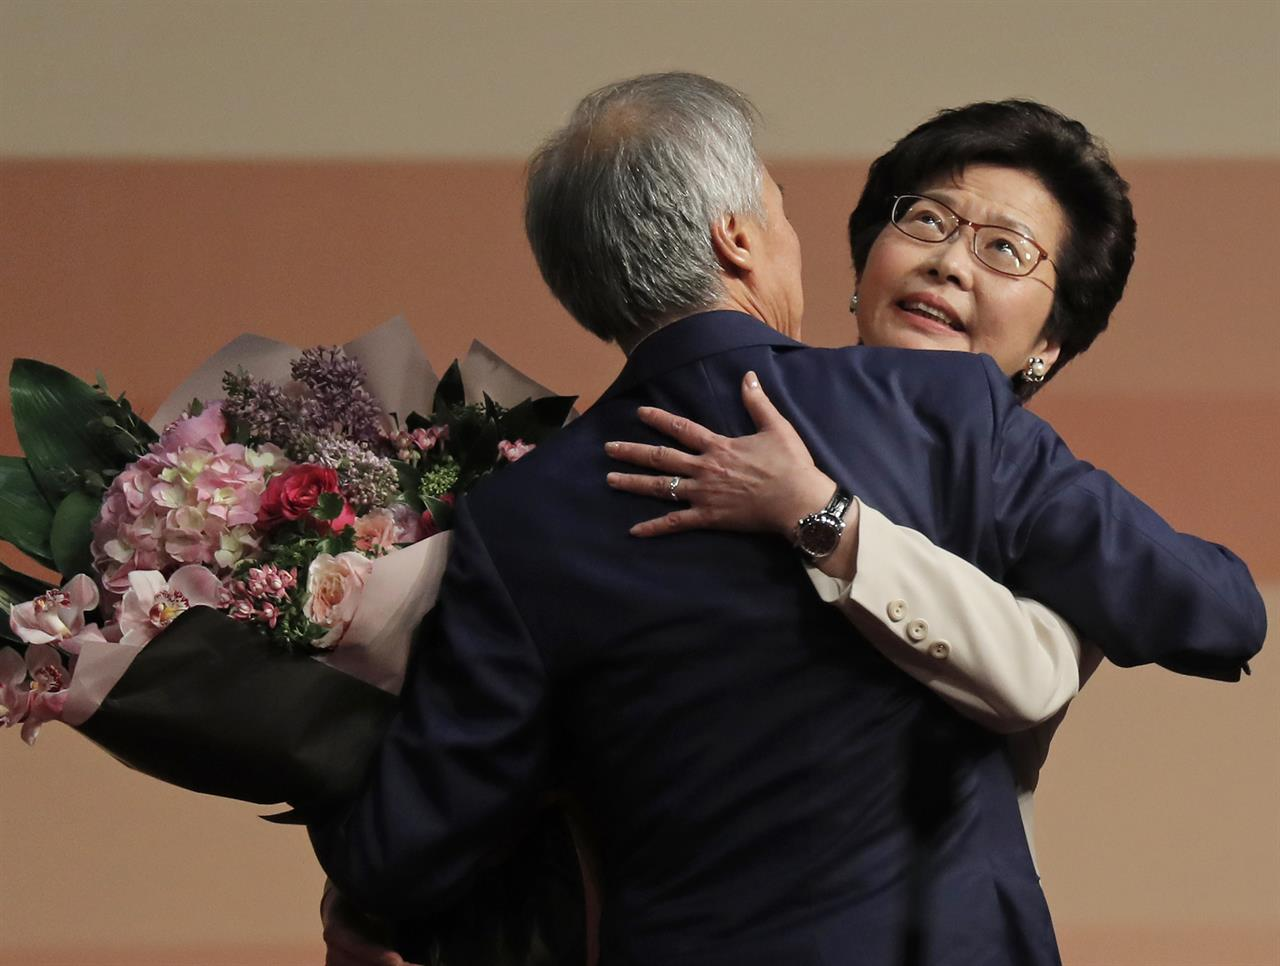 Former Hong Kong Chief Secretary Carrie Lam, right, is hugged by her husband Lam Siu-por after declaring her victory in the chief executive election of Hong Kong in Hong Kong, Sunday, March 26, 2017. A committee dominated by pro-Beijing elites chose Hong Kong's next leader Sunday in the first vote since huge pro-democracy protests erupted over the election system in 2014.